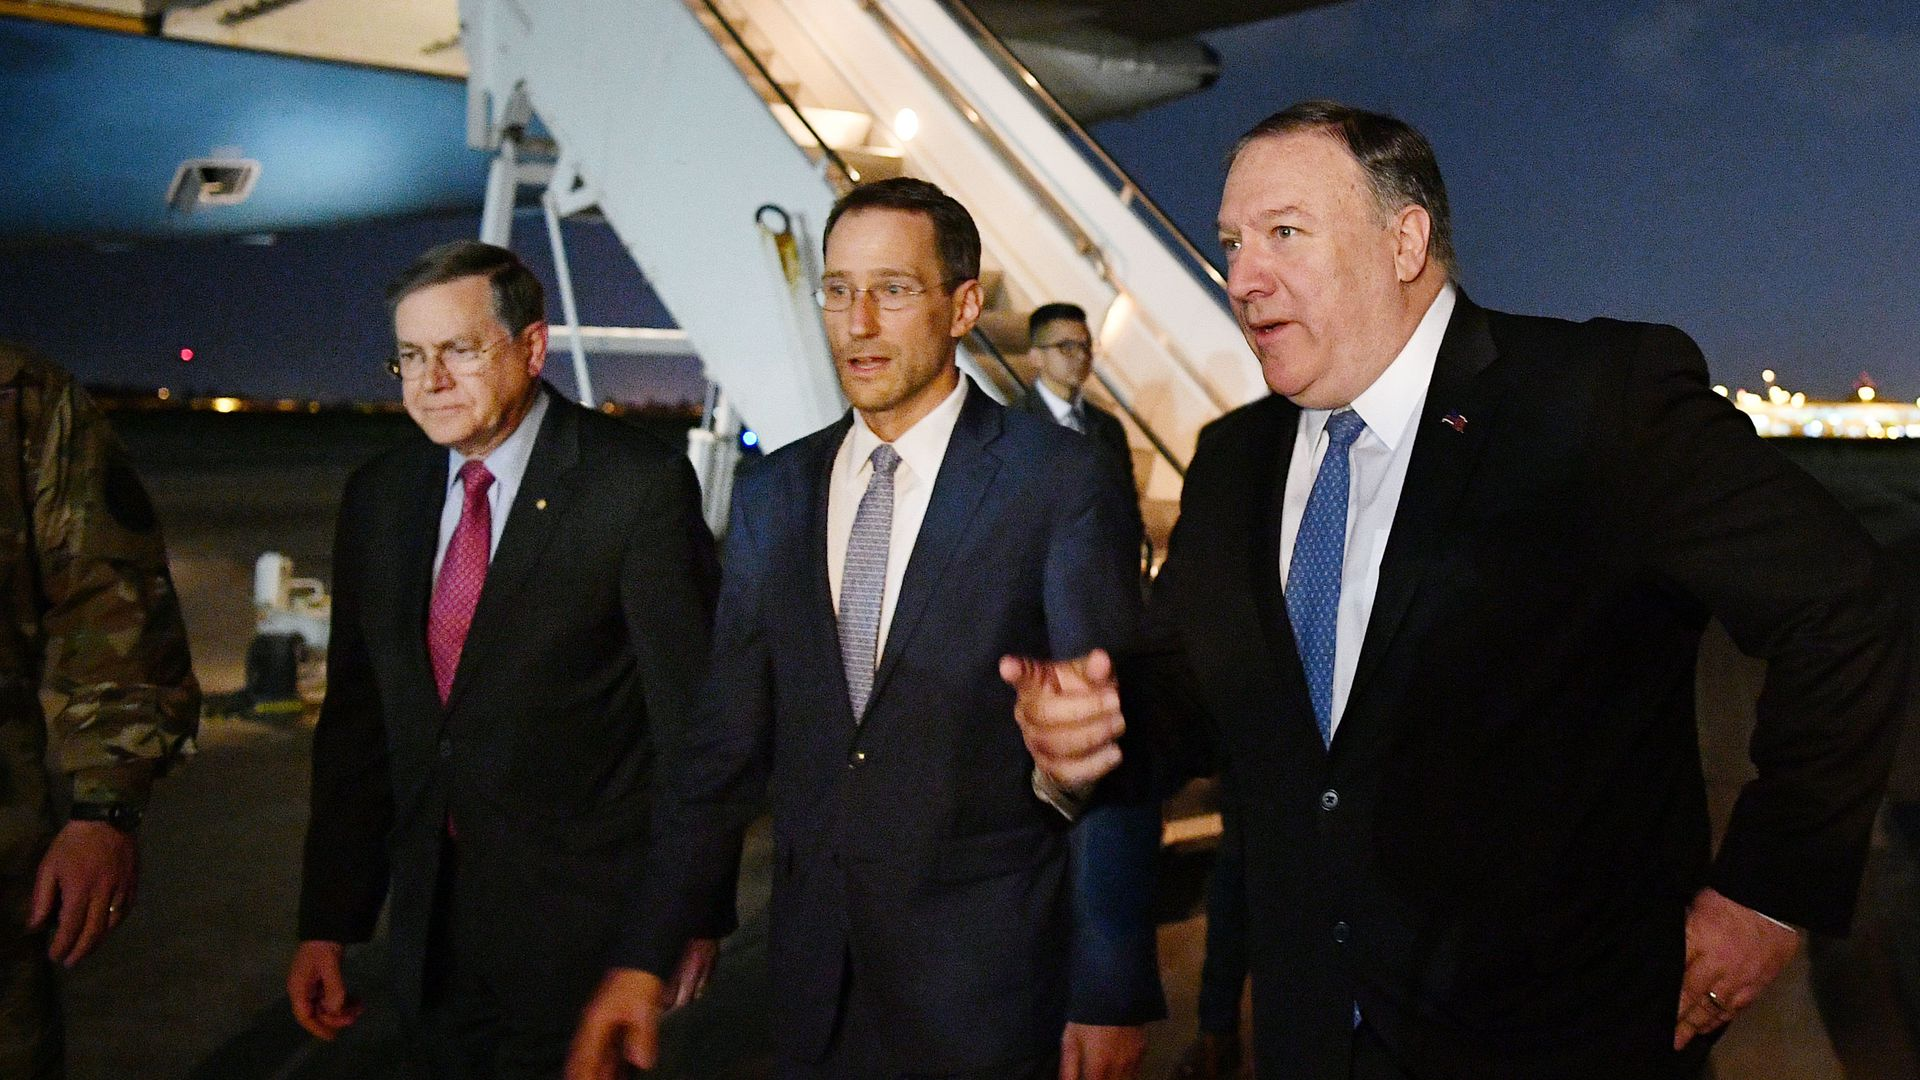 Pompeo with diplomats in Iraq